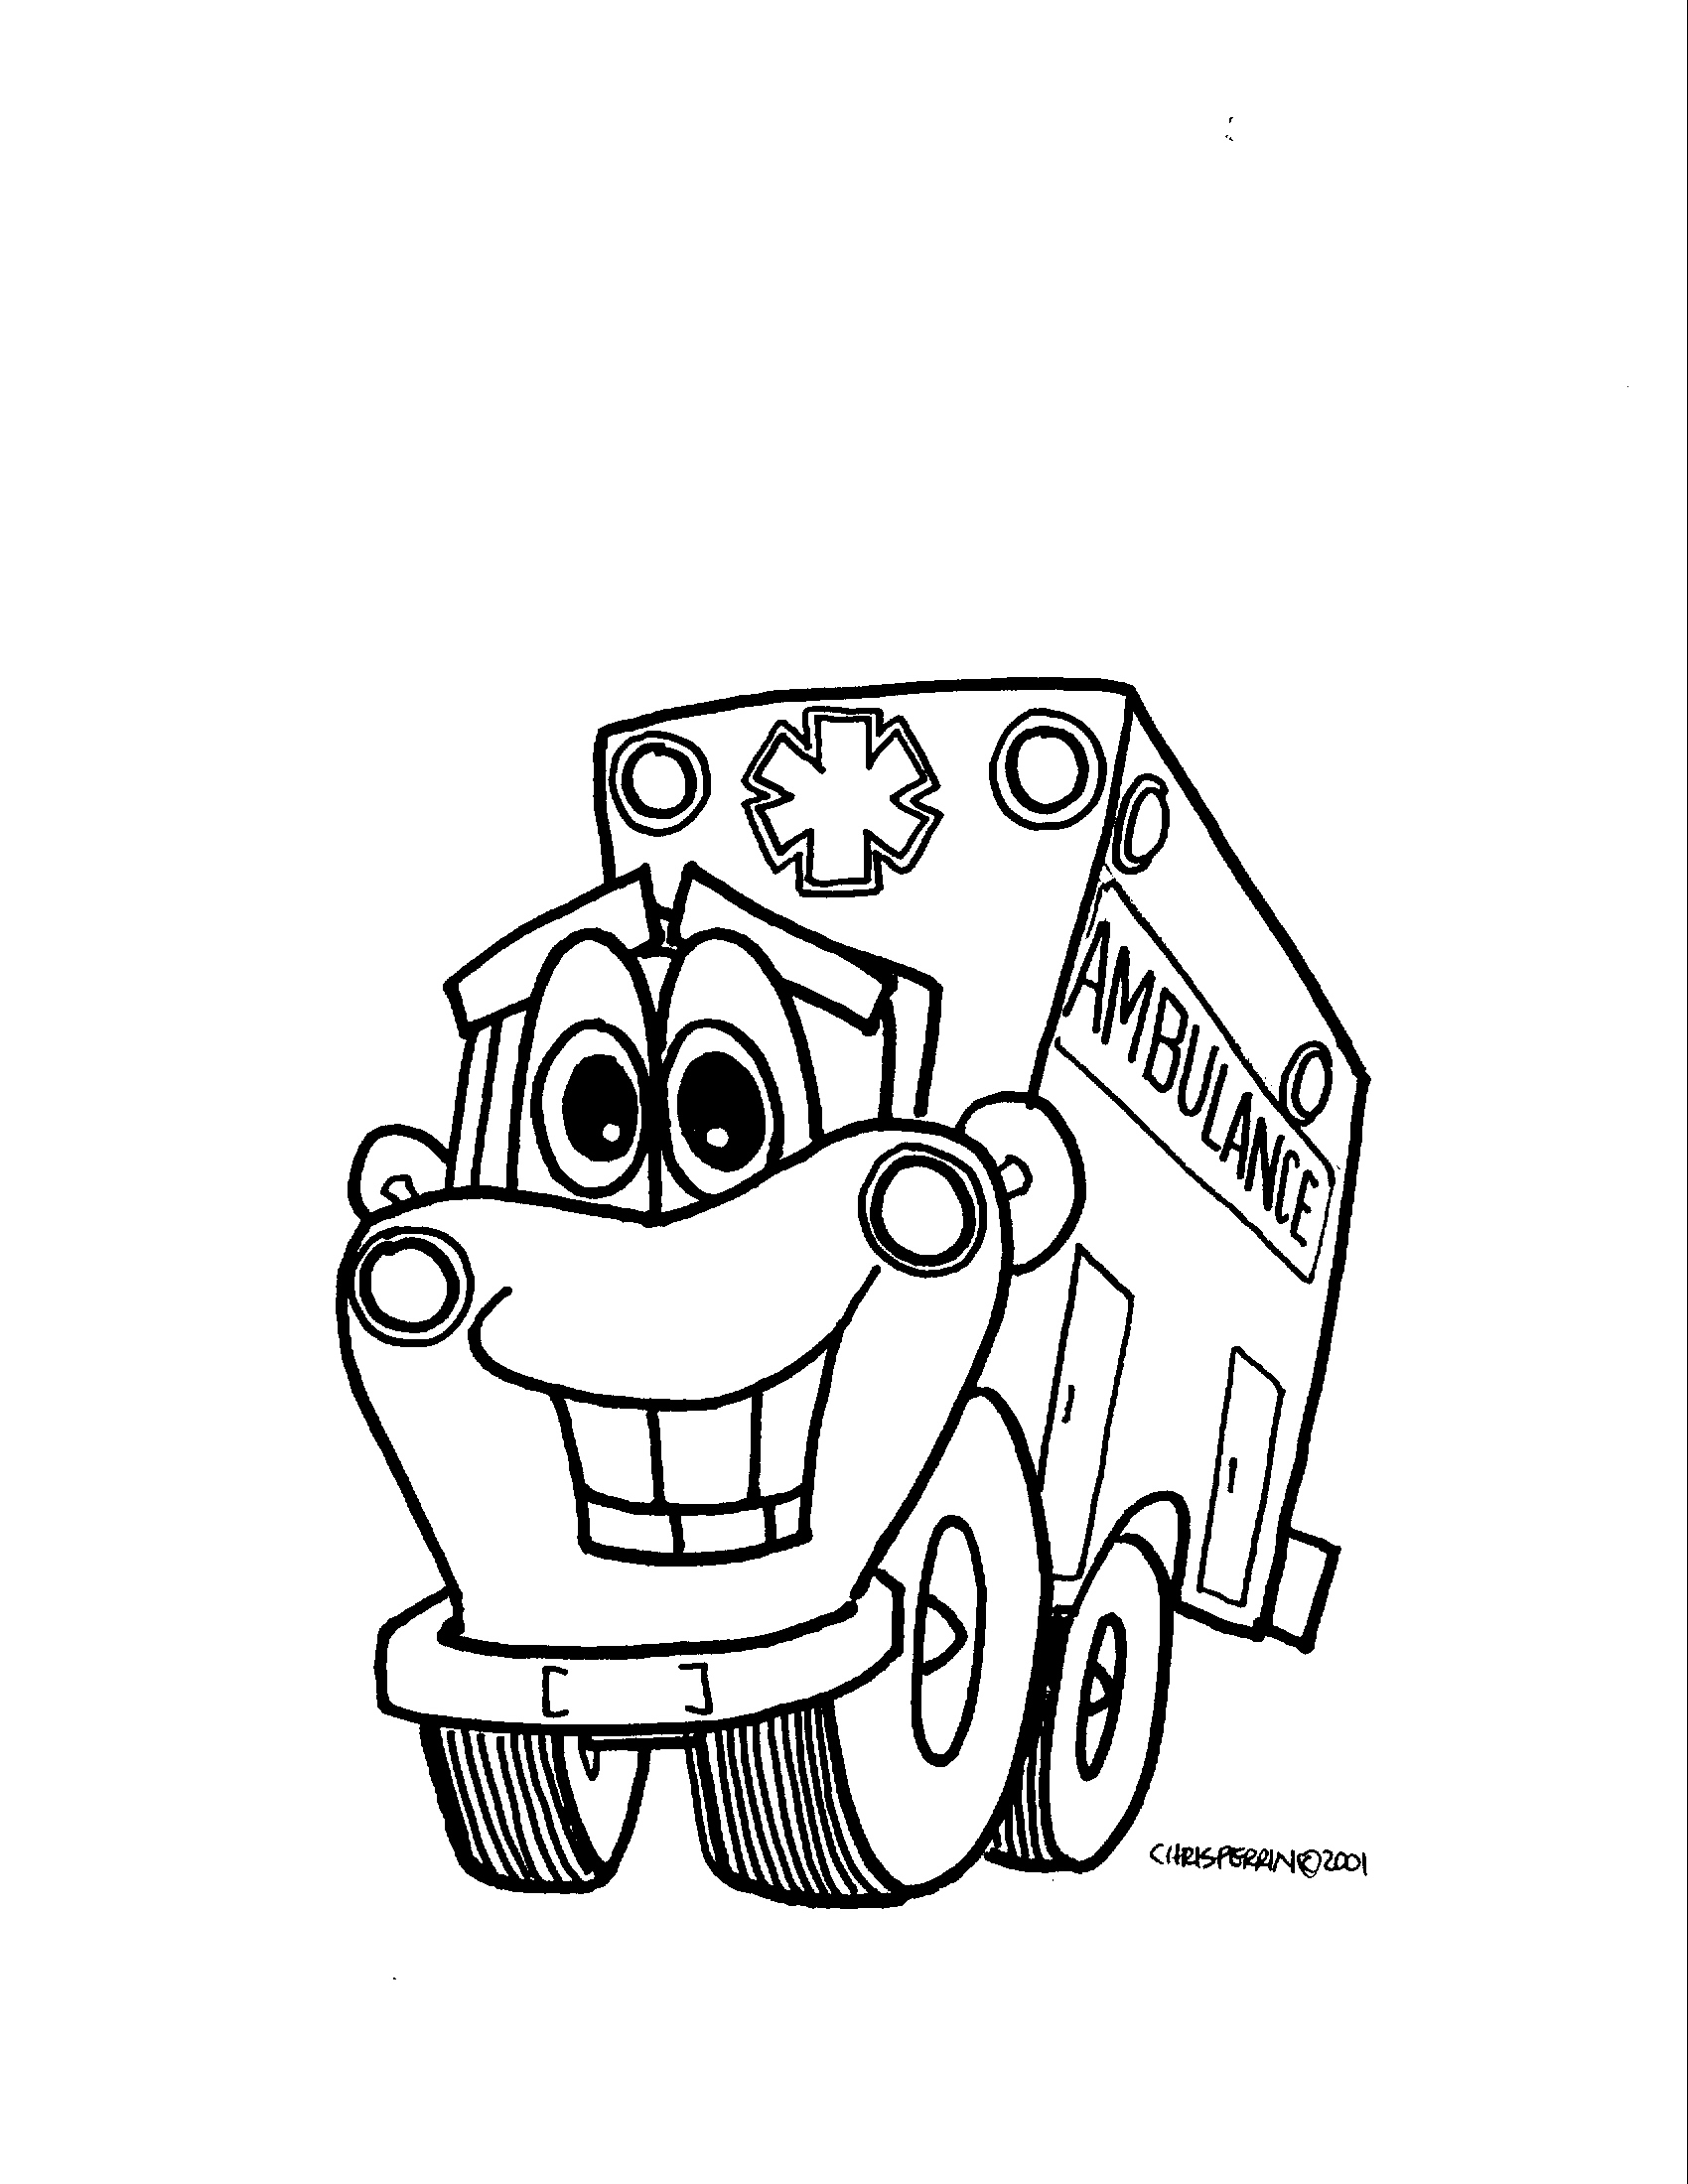 best friend coloring pages - Ambulance Coloring Pages Kids